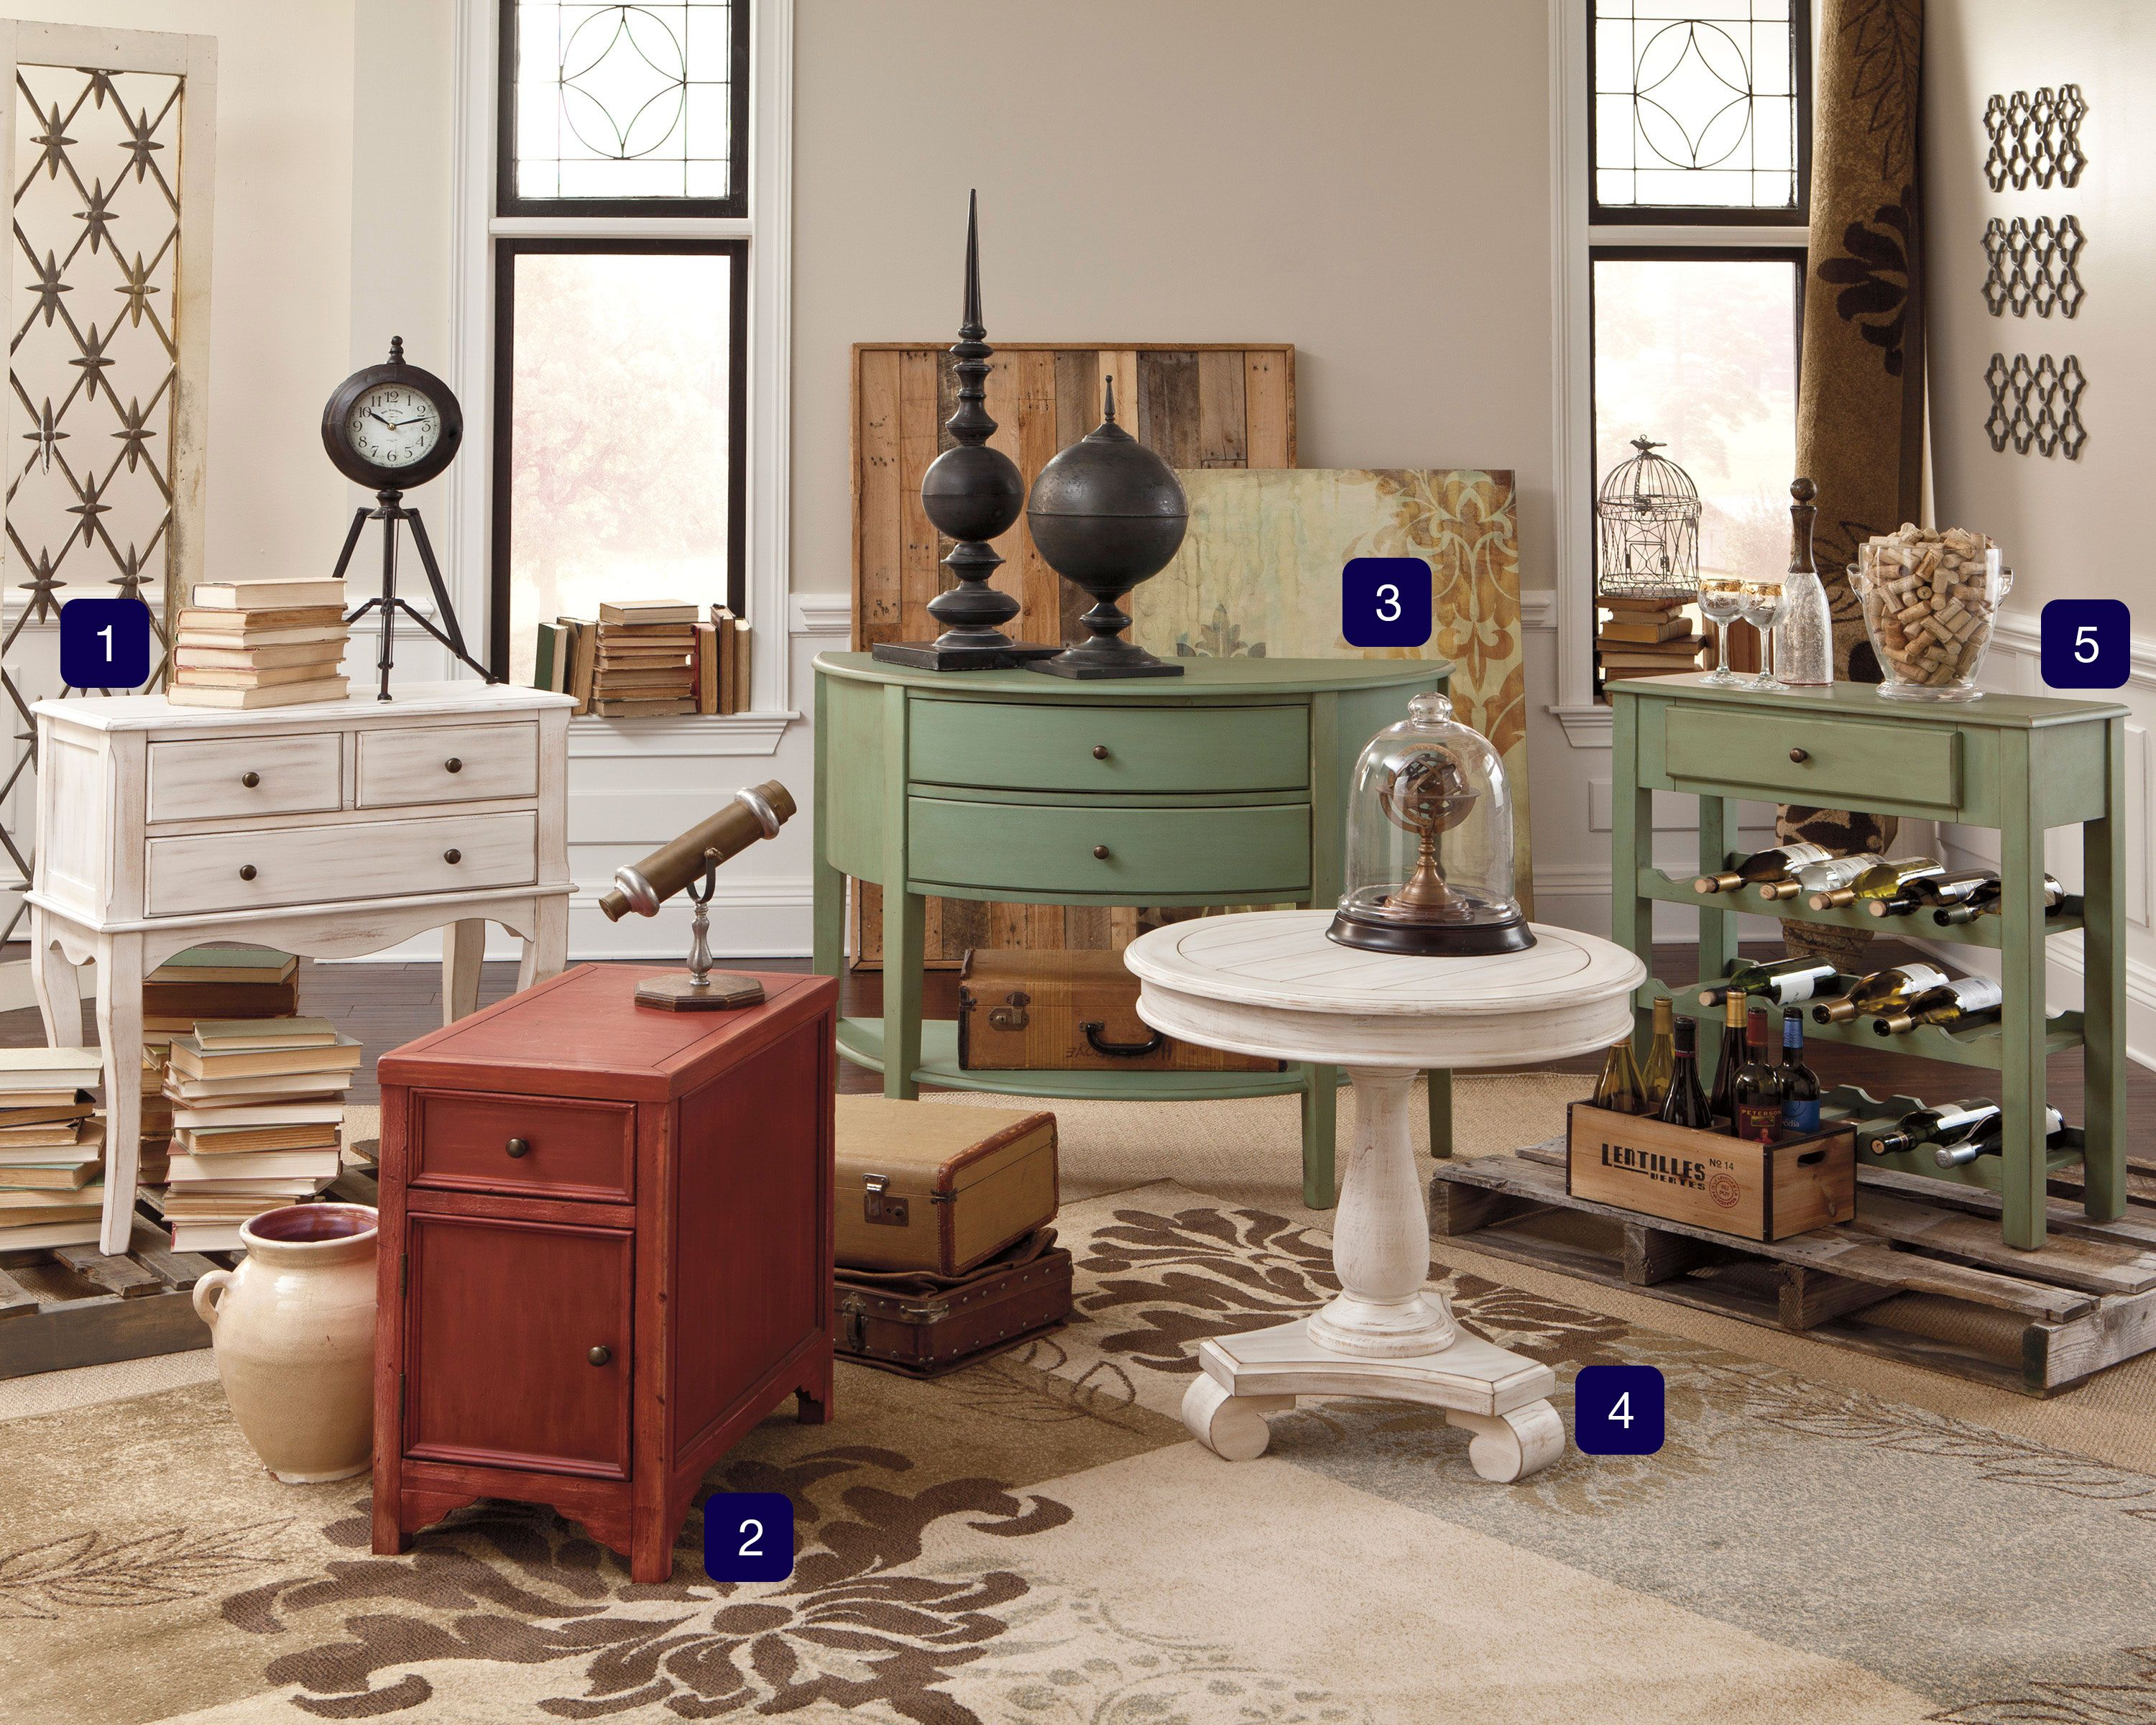 Introducing our new rustic painted storage cabinets and small